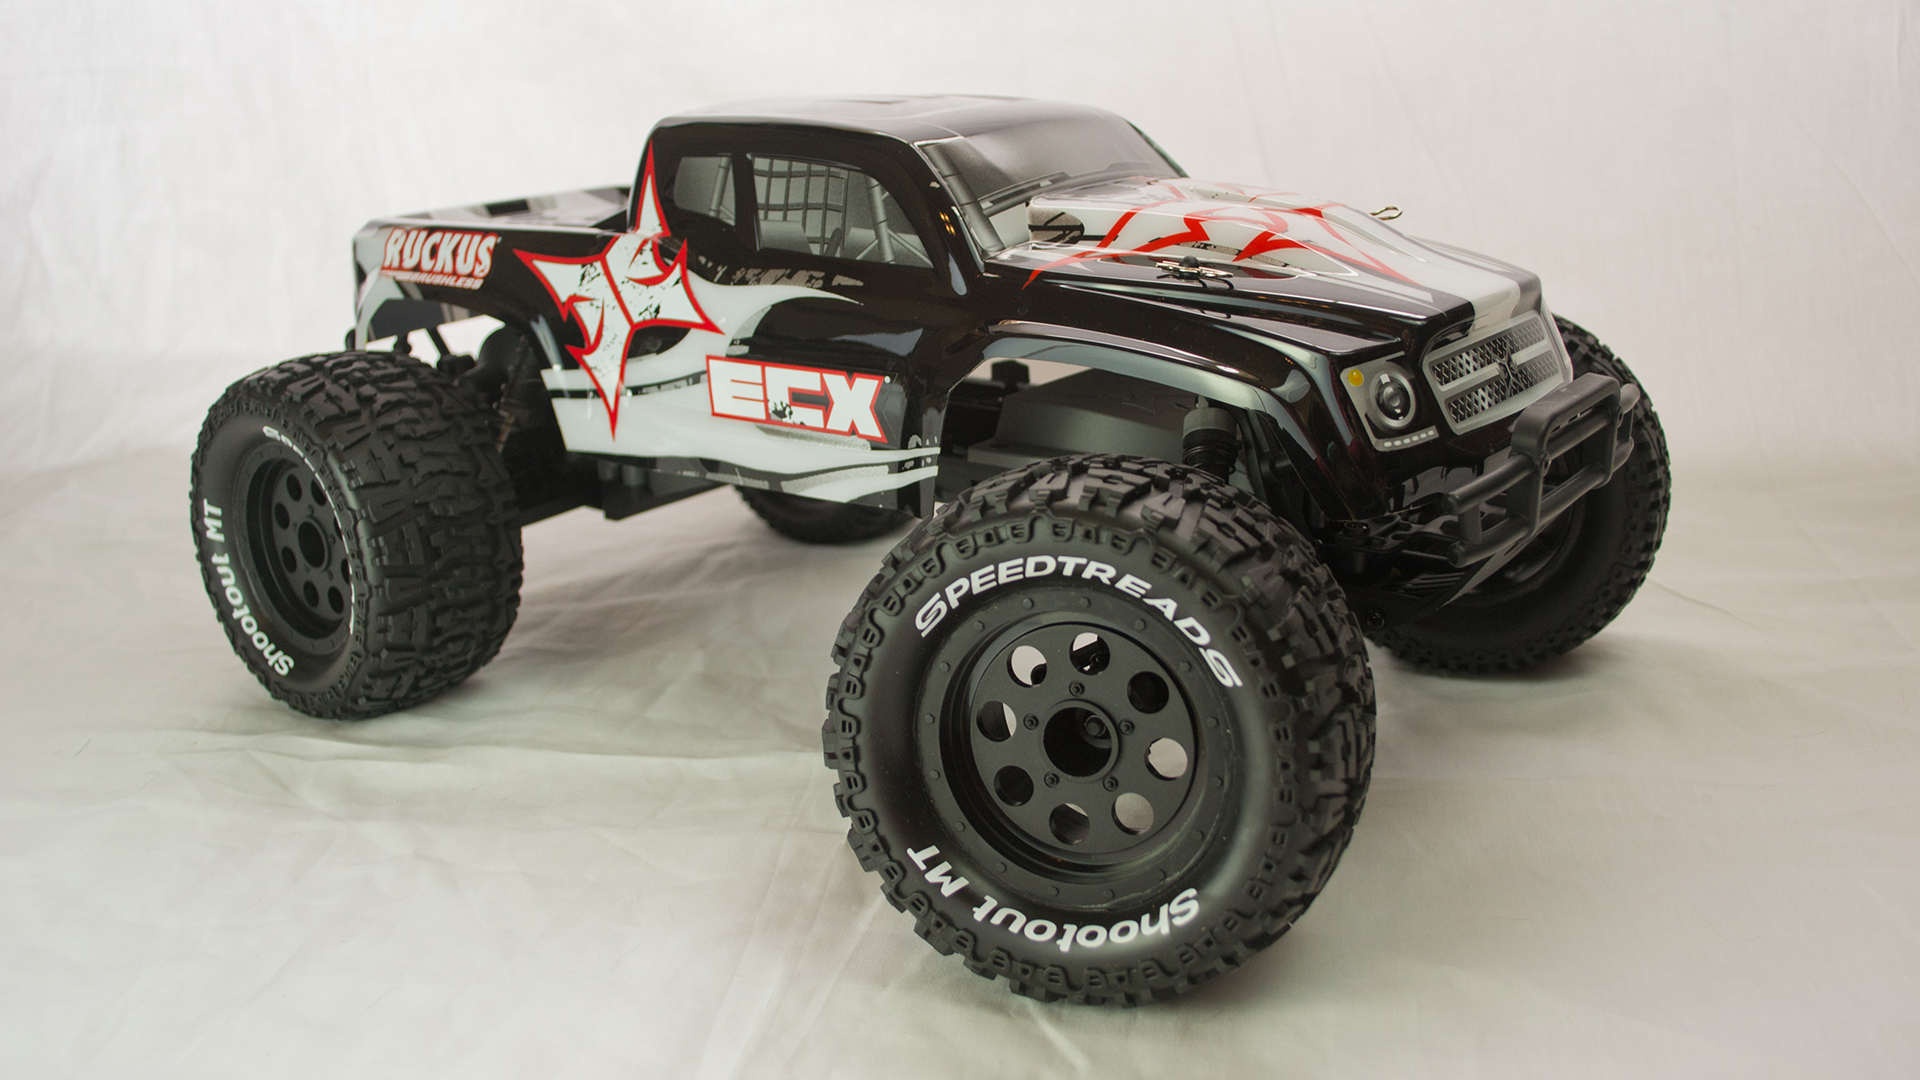 rc electric cars off road with 460699 How Get Hobby Rc Car Basics And Monster Truckin on 460699 How Get Hobby Rc Car Basics And Monster Truckin furthermore Top 10 Crashes On Nurburgring From 2013 To 2015 Video together with 734445 Associated Rc10 Gold Tub Re Release 11 furthermore LicensedLamborghiniAventadorLP700 4Roadster114ElectricRTRRCCar further 7176.